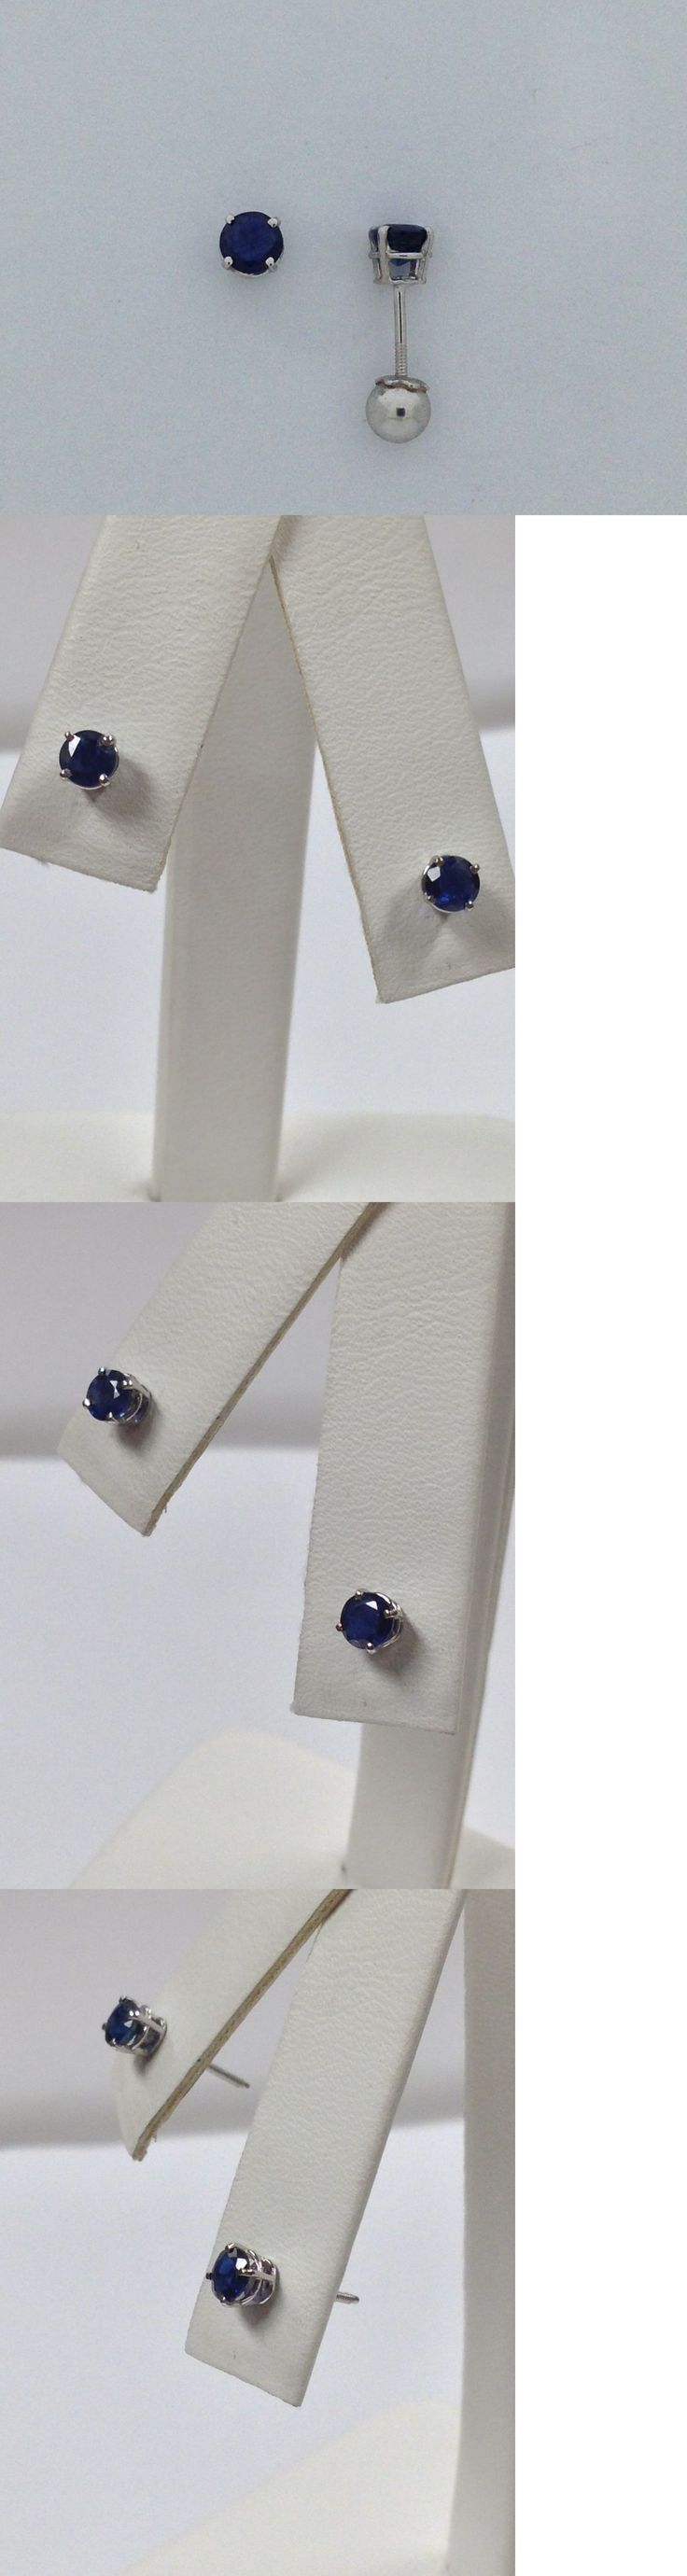 Earrings 98476: Natural Sapphire Screwback Post Earrings For Baby Children Solid 14Kt White Gold -> BUY IT NOW ONLY: $95 on eBay!